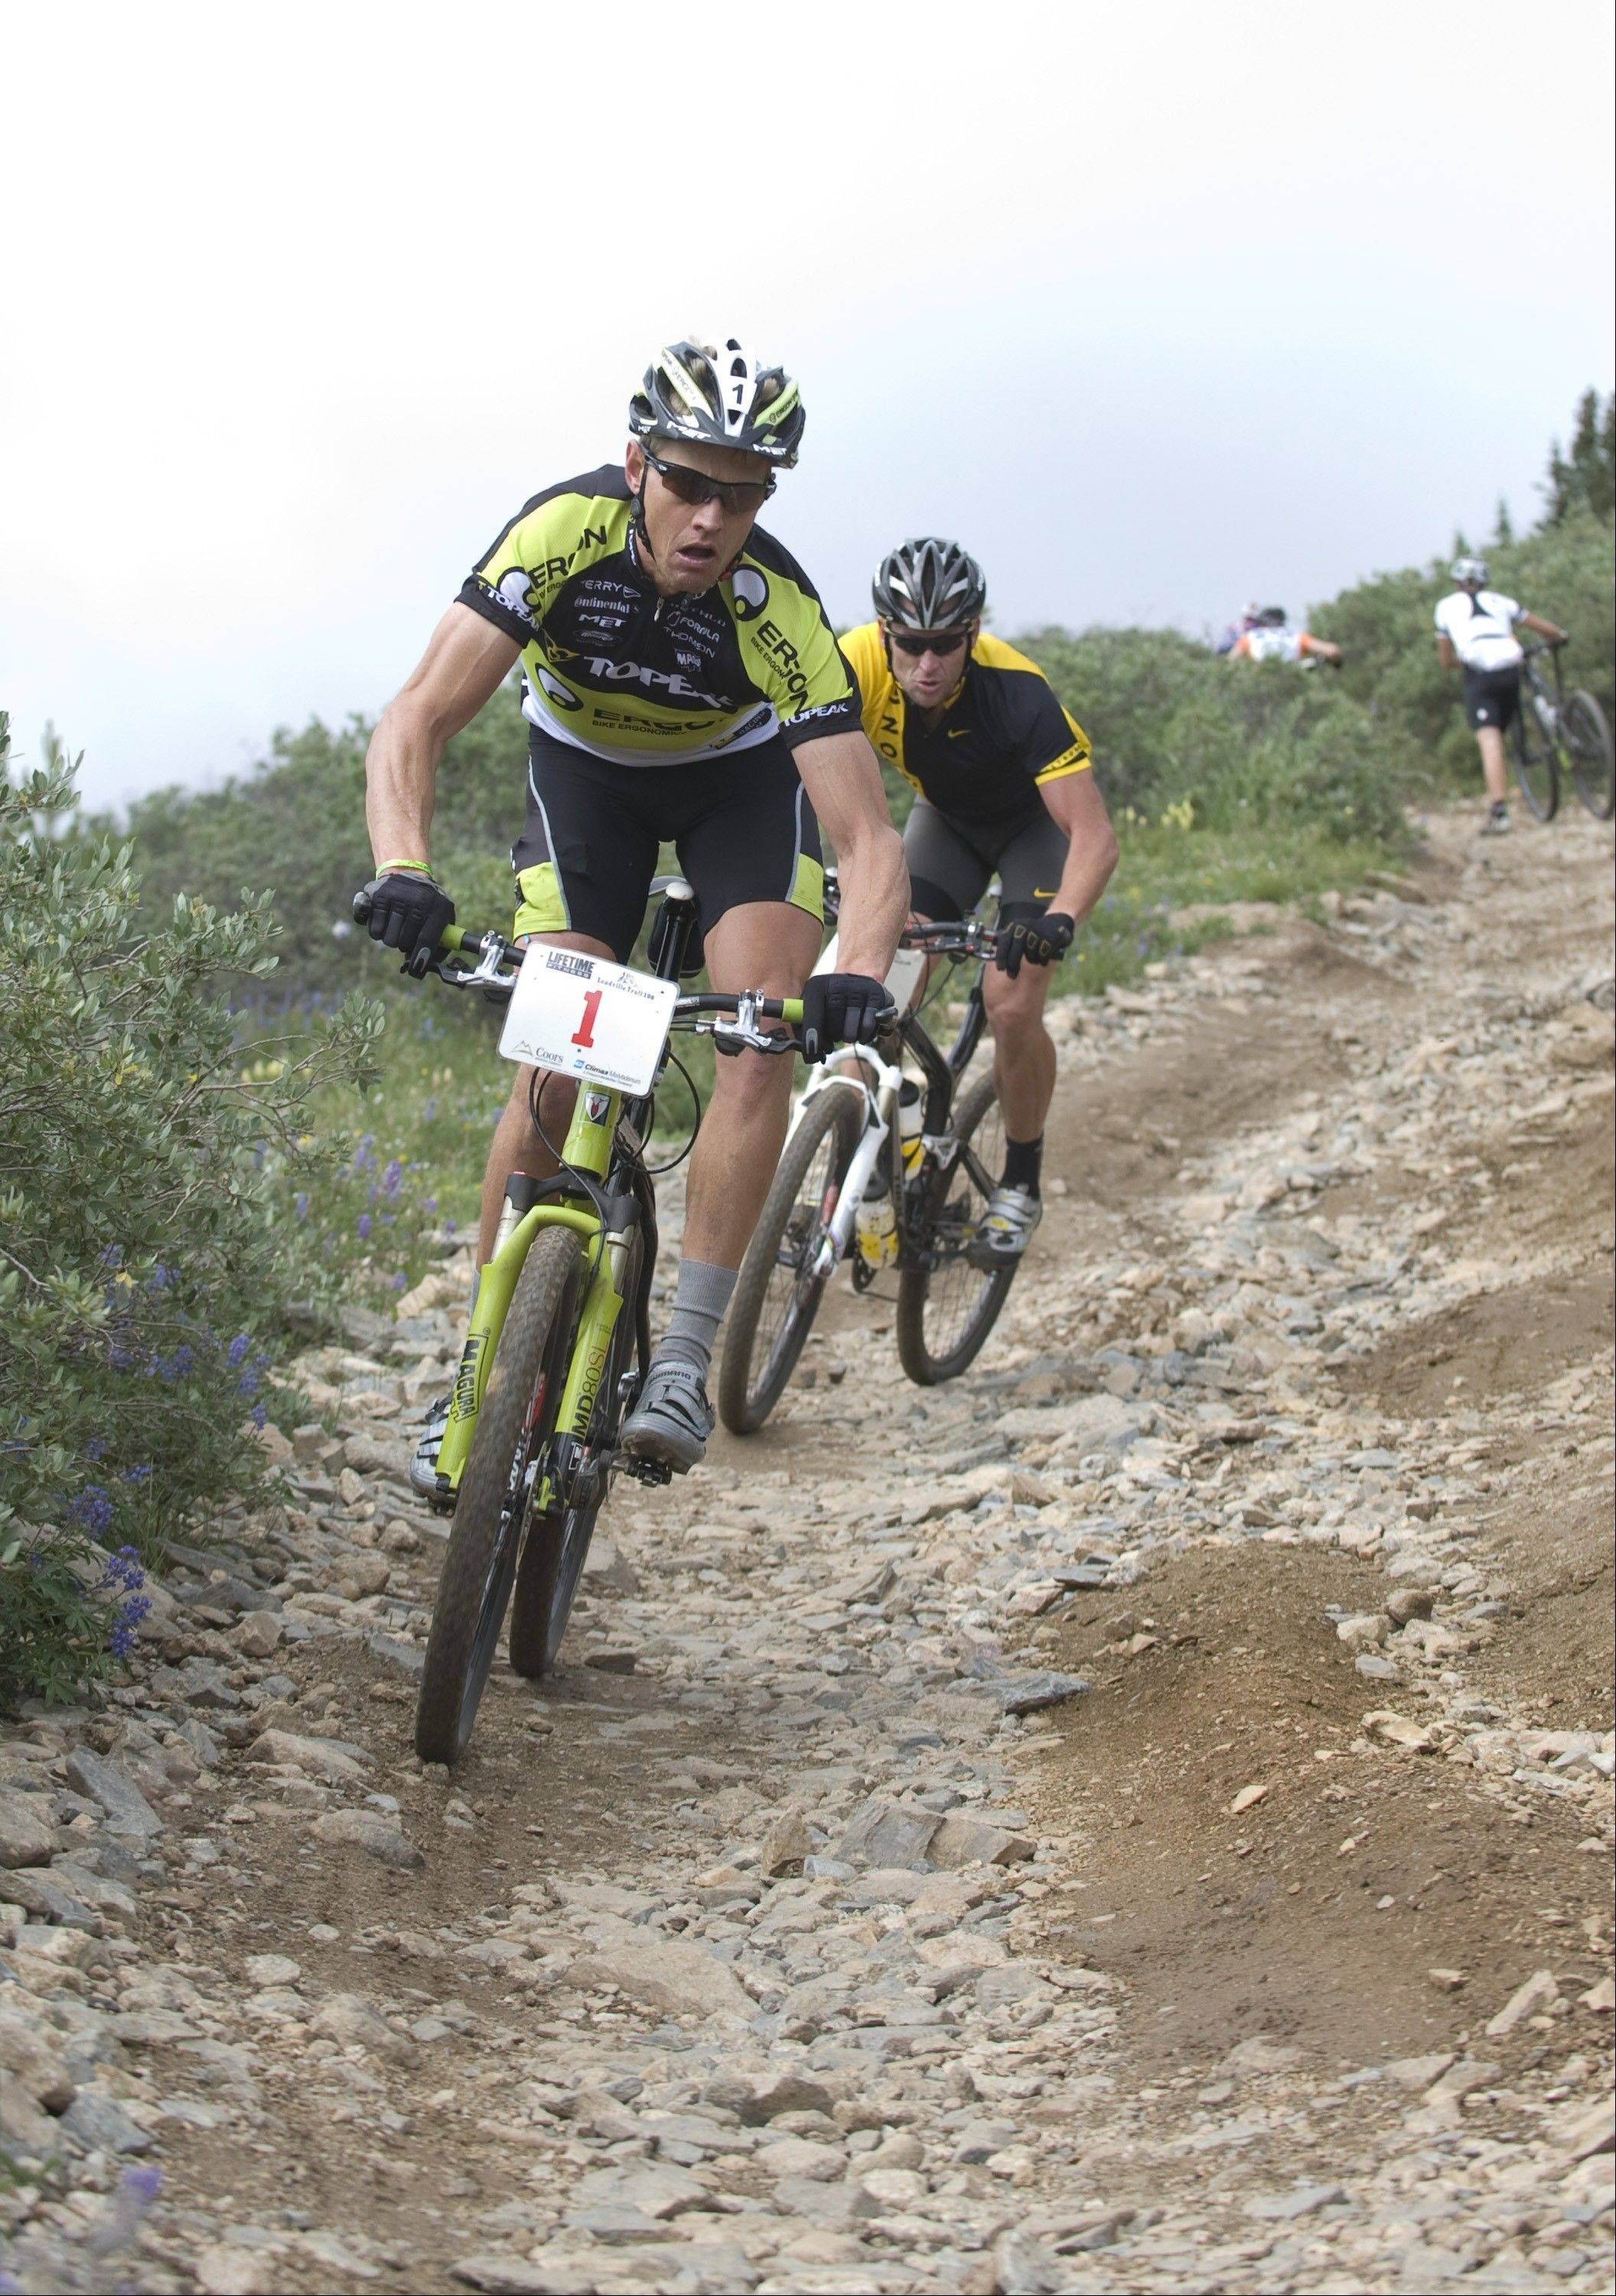 In this photo provided by Alex Fenlon, Dave Wiens, left, leads Lance Armstrong just after the halfway point of the Leadville 100 mountain bike race on Saturday, Aug. 9, 2008, in Leadville, Colo. Wiens went on to win the race, with Armstrong second.